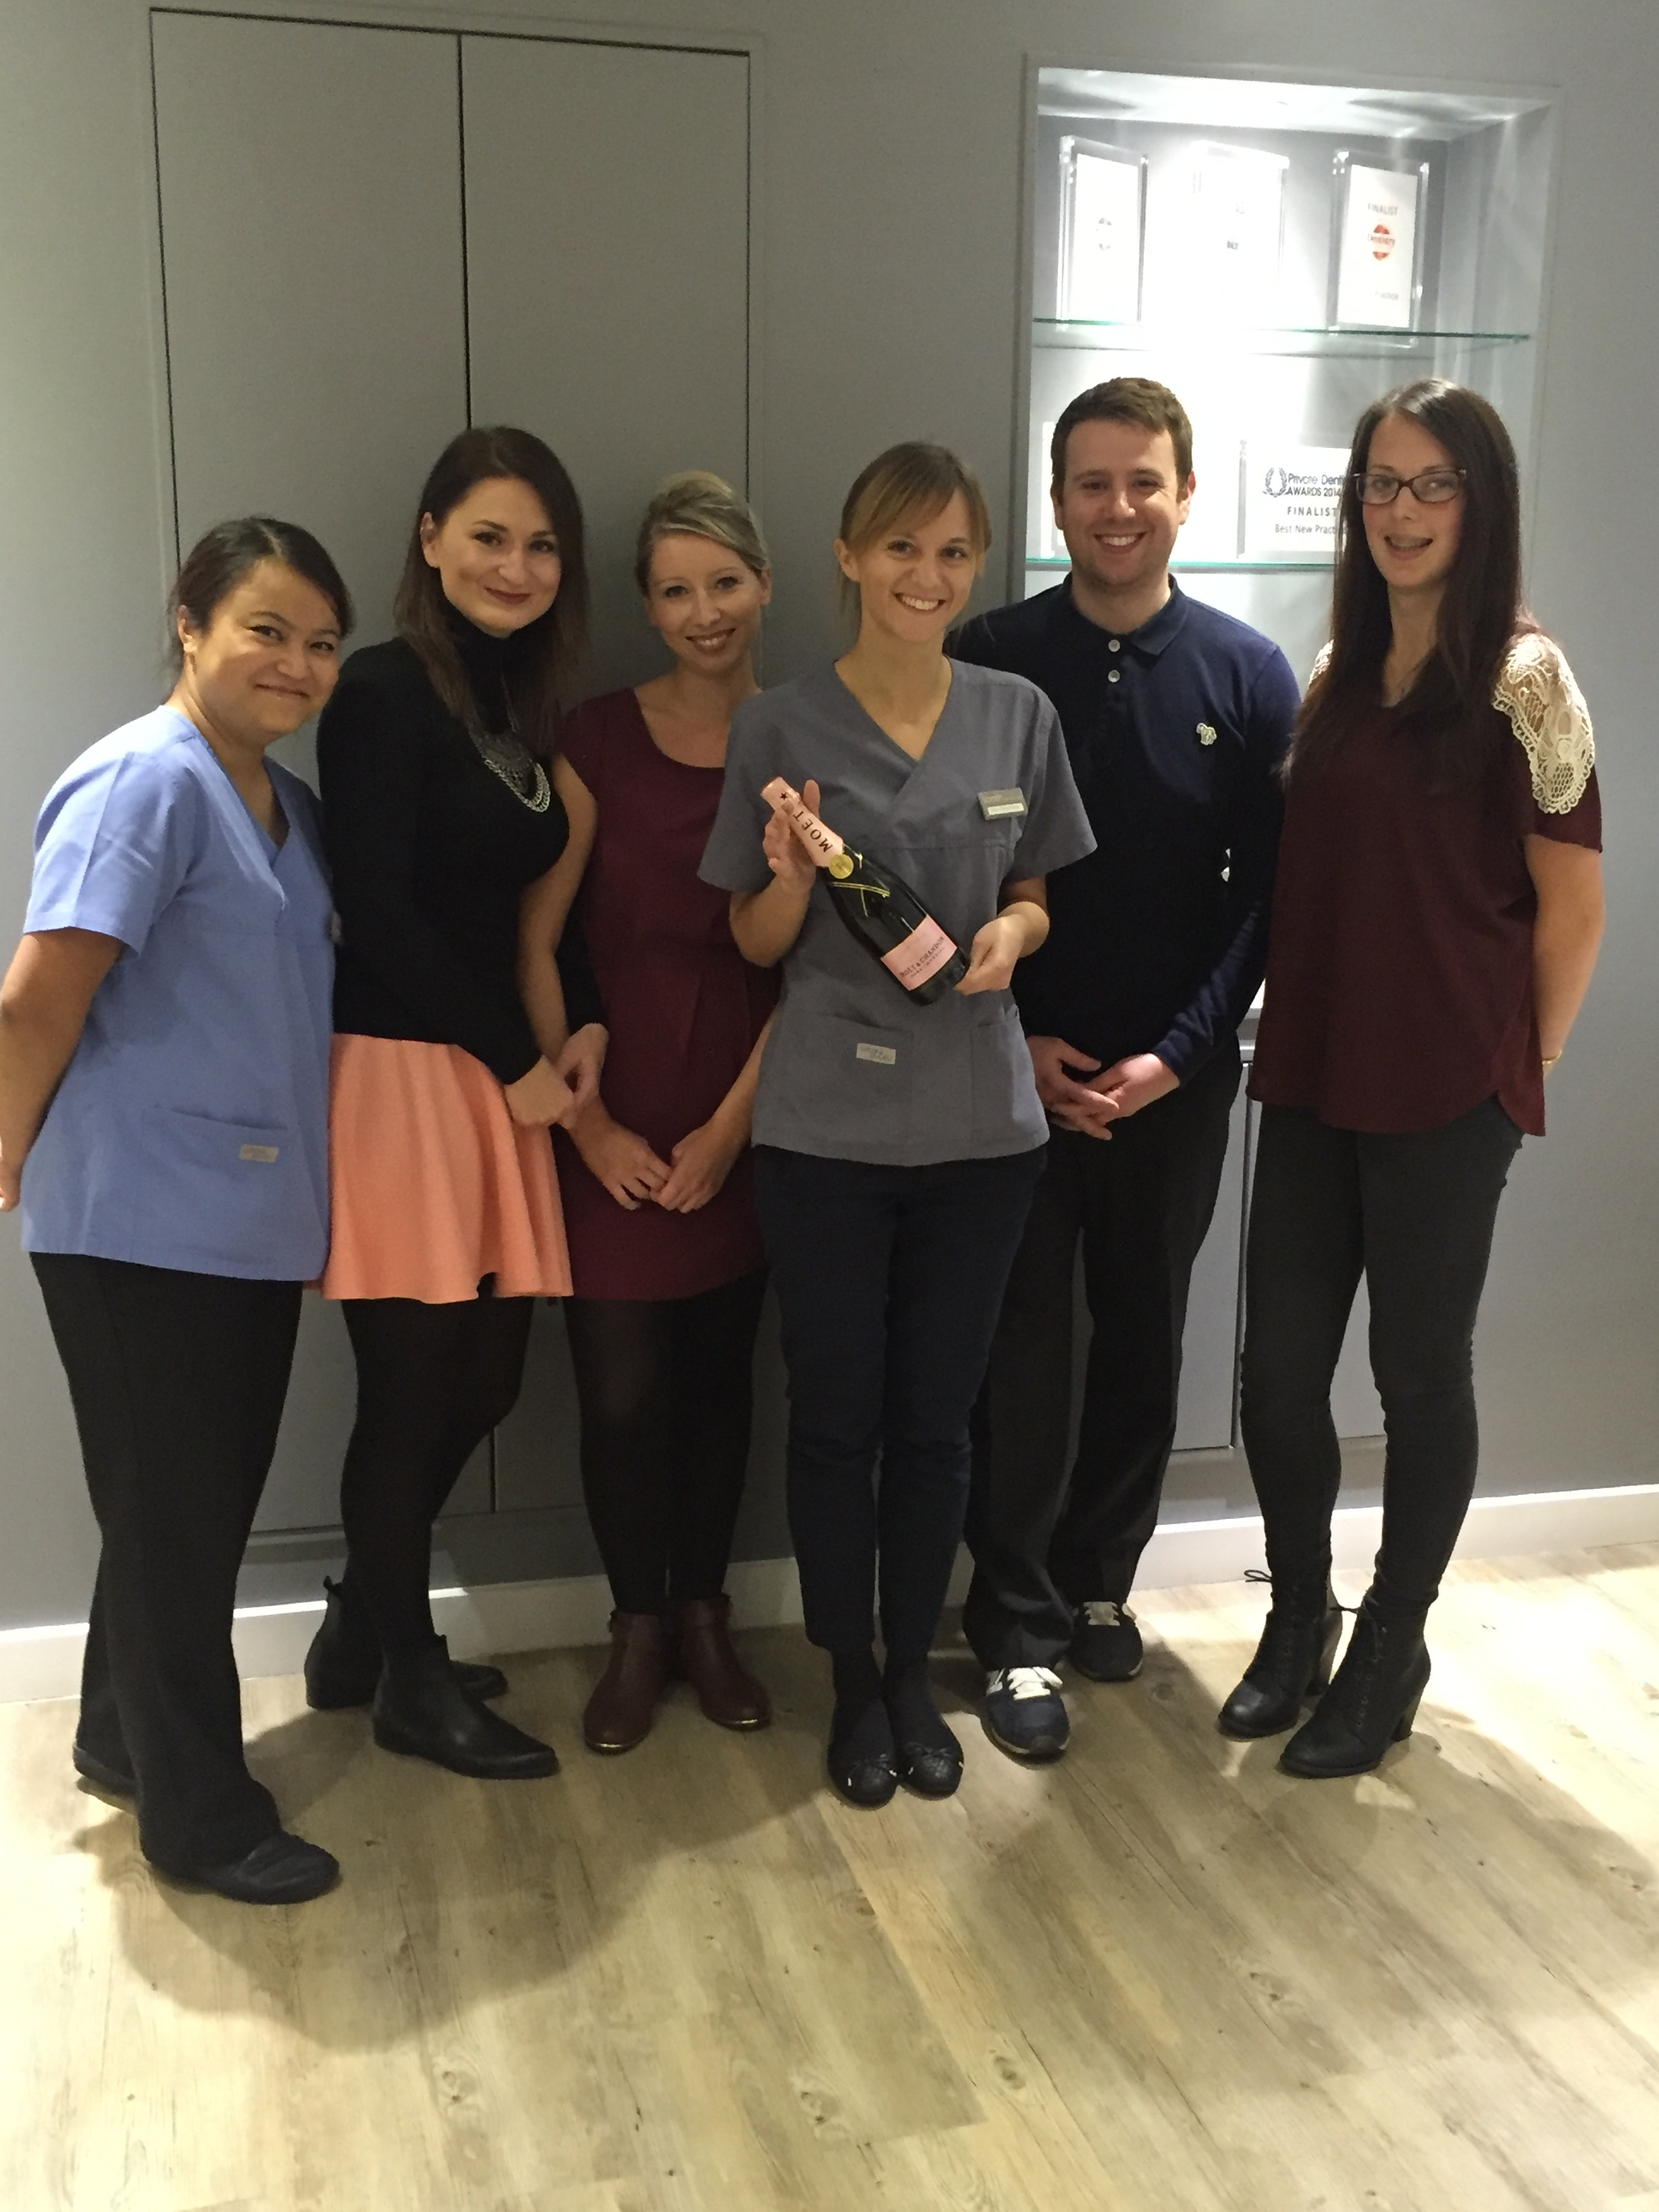 the team at tooth dental surgery in waterloo, london celebrating our Best Dental Practice Award win